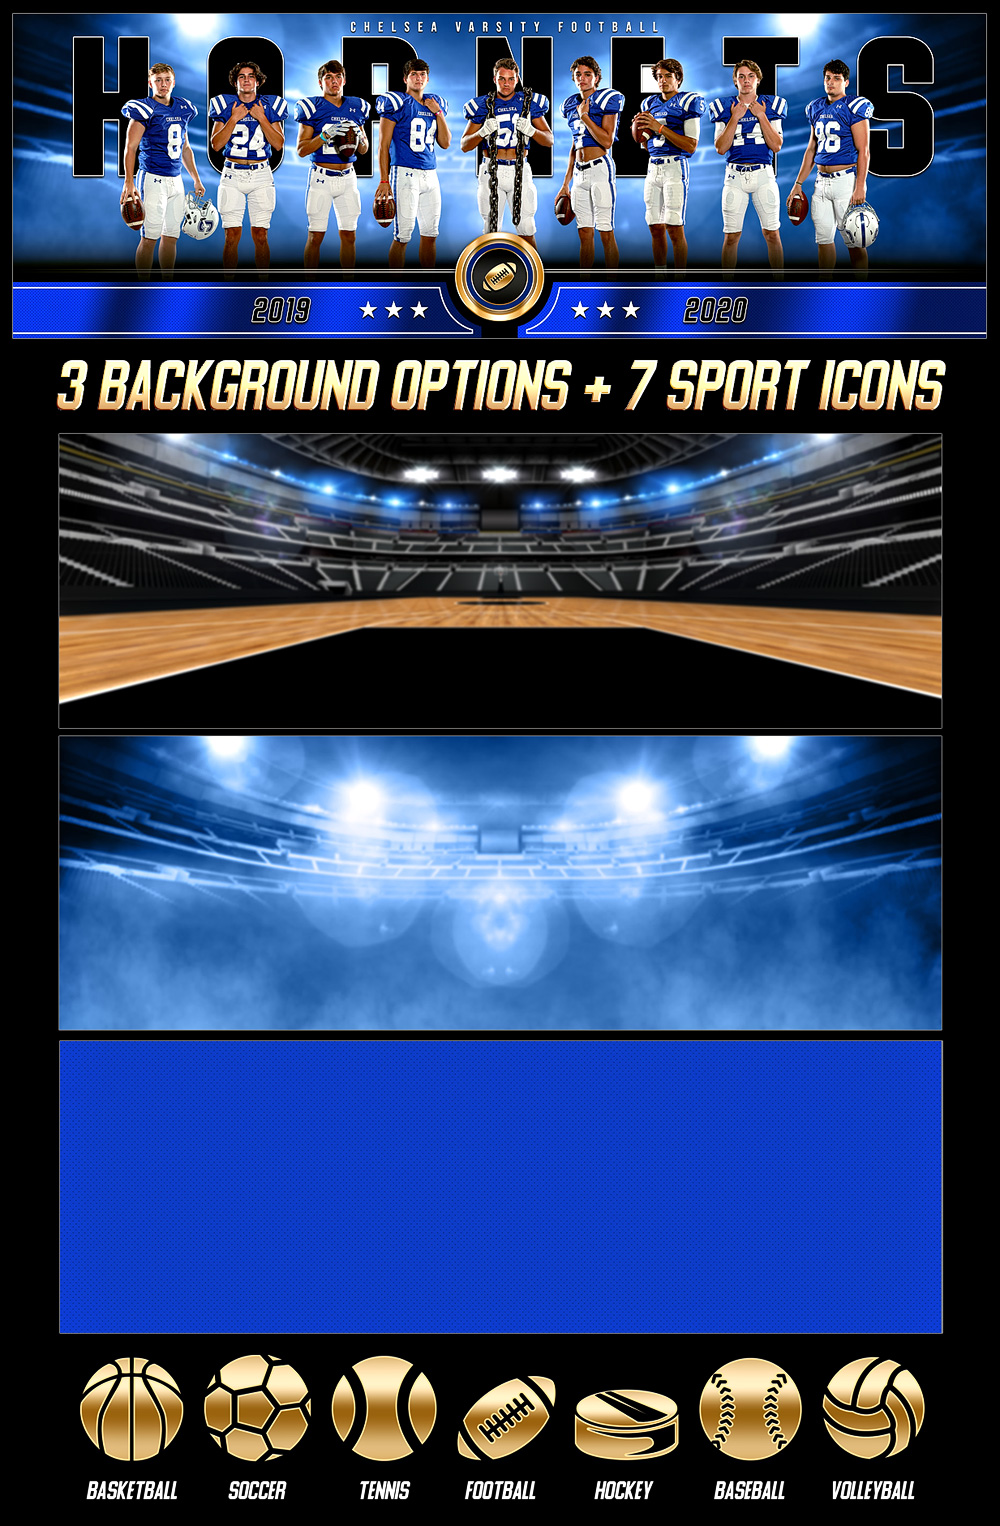 MULTI-SPORT PANORAMIC SPORTS BANNER TEMPLATE - GOLD MEDAL - PHOTOSHOP LAYERED SPORTS TEMPLATE